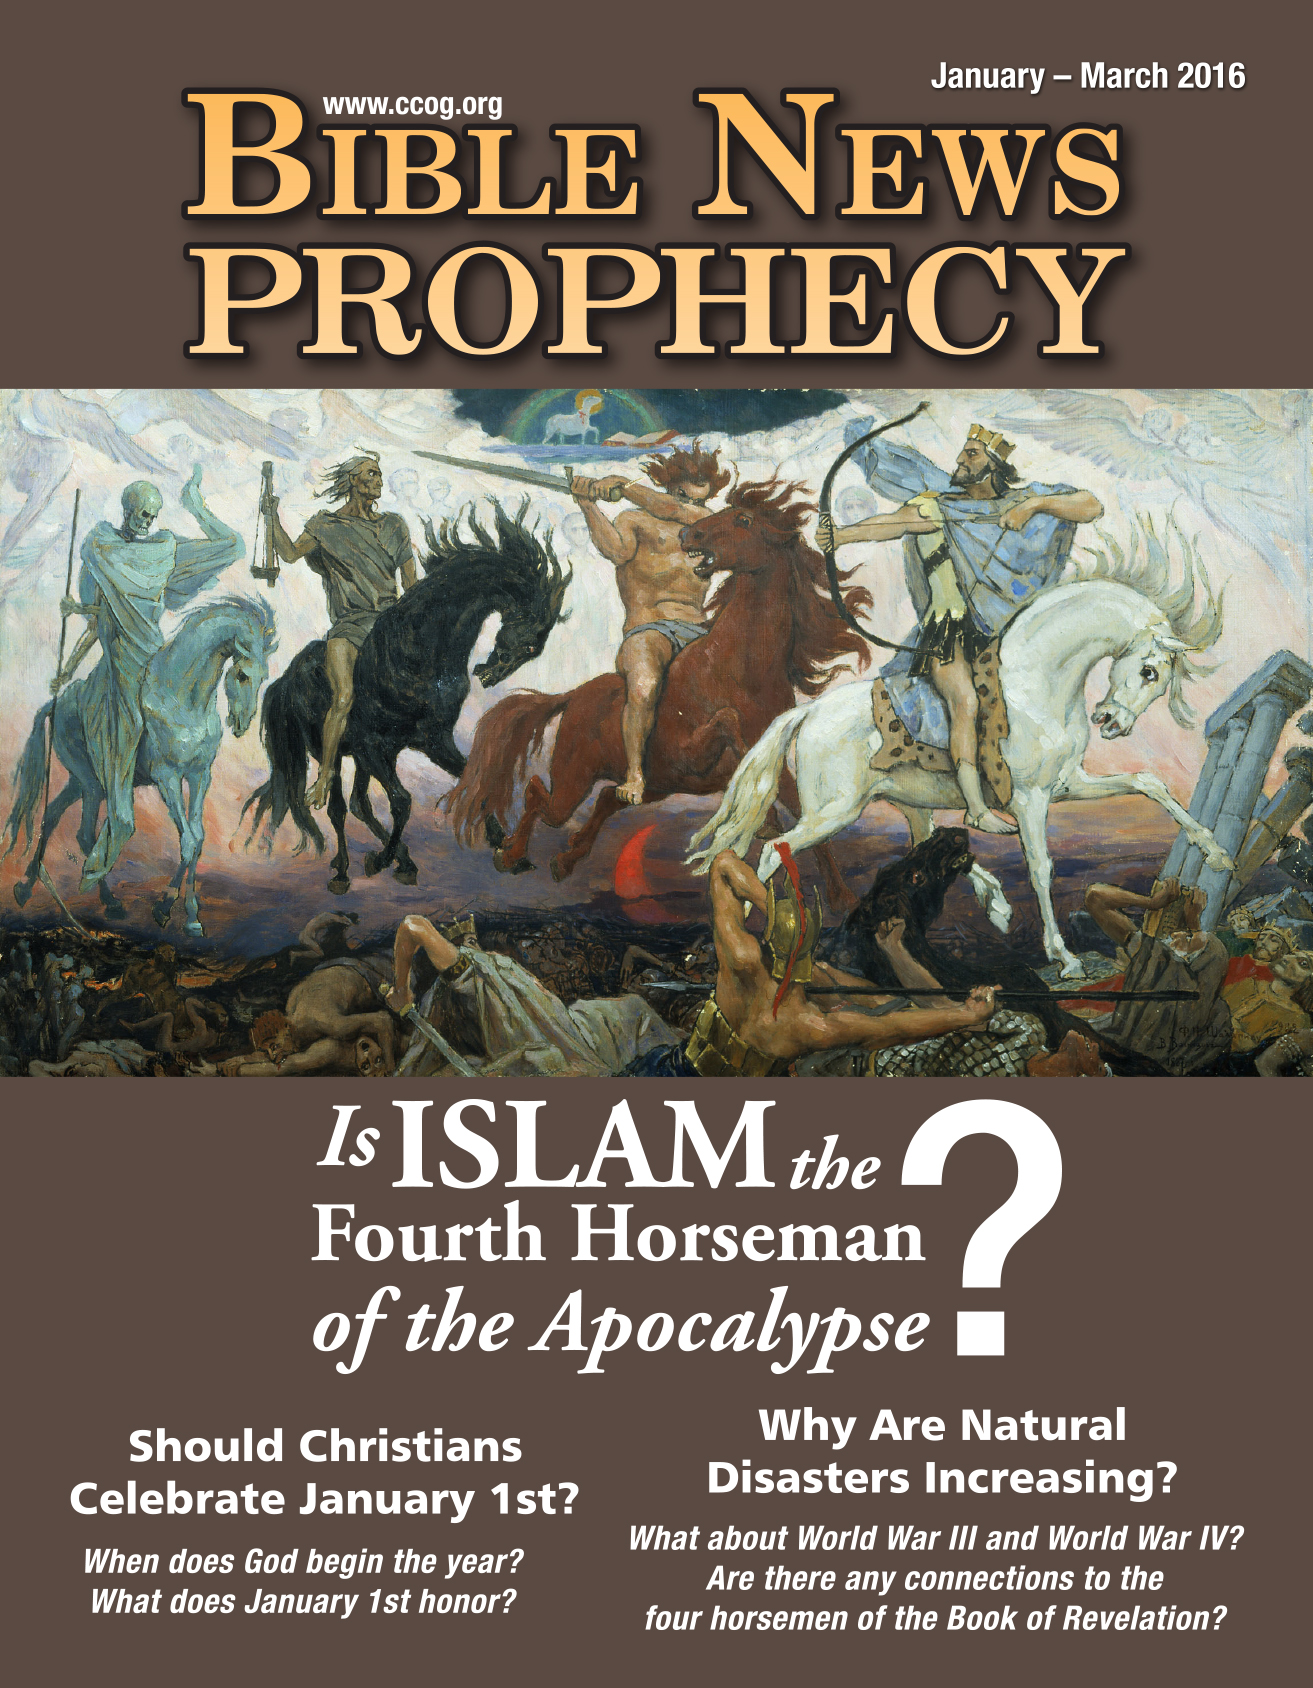 a literary analysis of the mythology of the four horsemen The four horsemen of the apocalypse are each given separate quarters of the earth if we take a look at revelation 6, there are 4 horses we've seen the black horse is not a match, and there is no match for the pale horse.